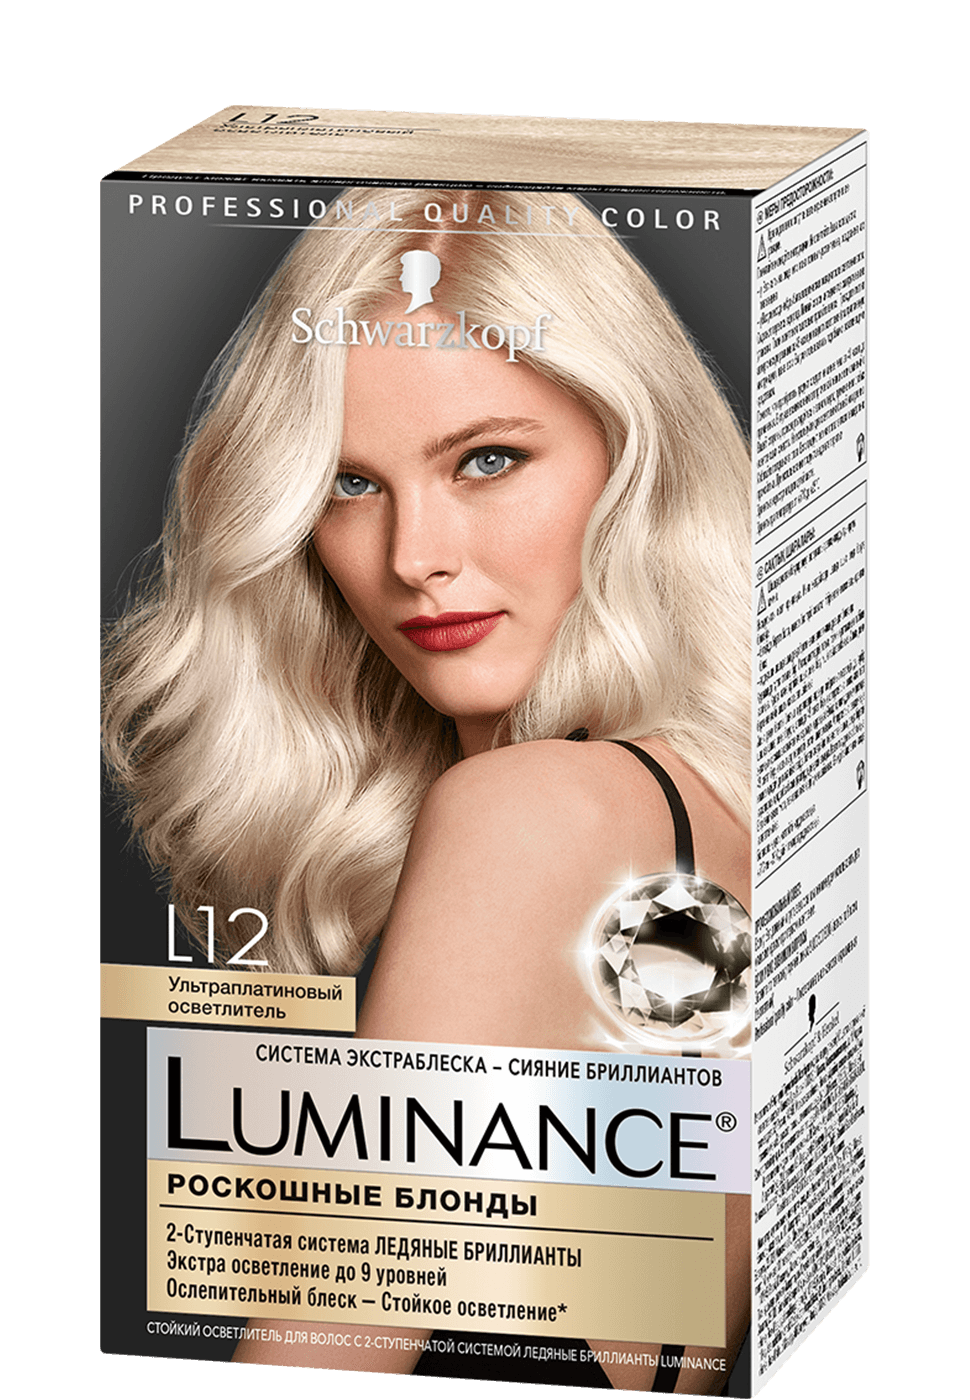 luminance_ru_iconic_blondes_l12_970x1400